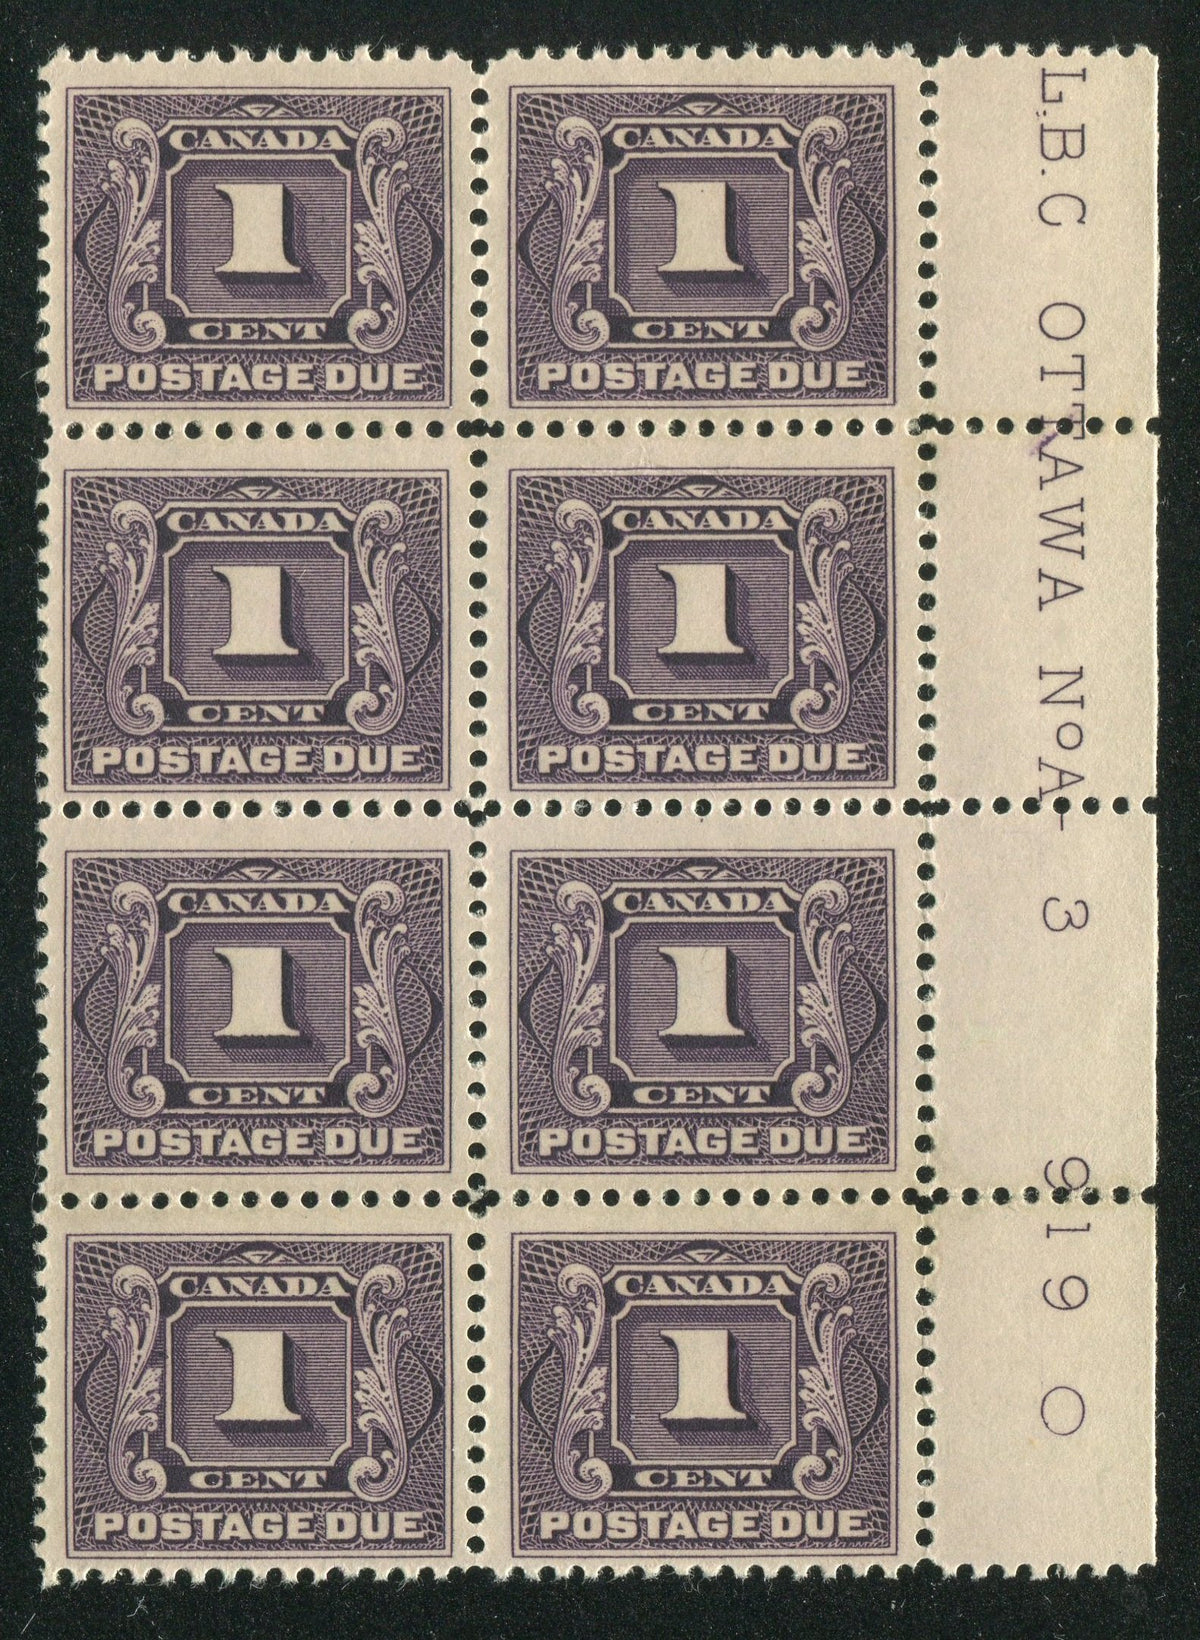 0117CA1710 - Canada J1 - Mint Plate Block of 8